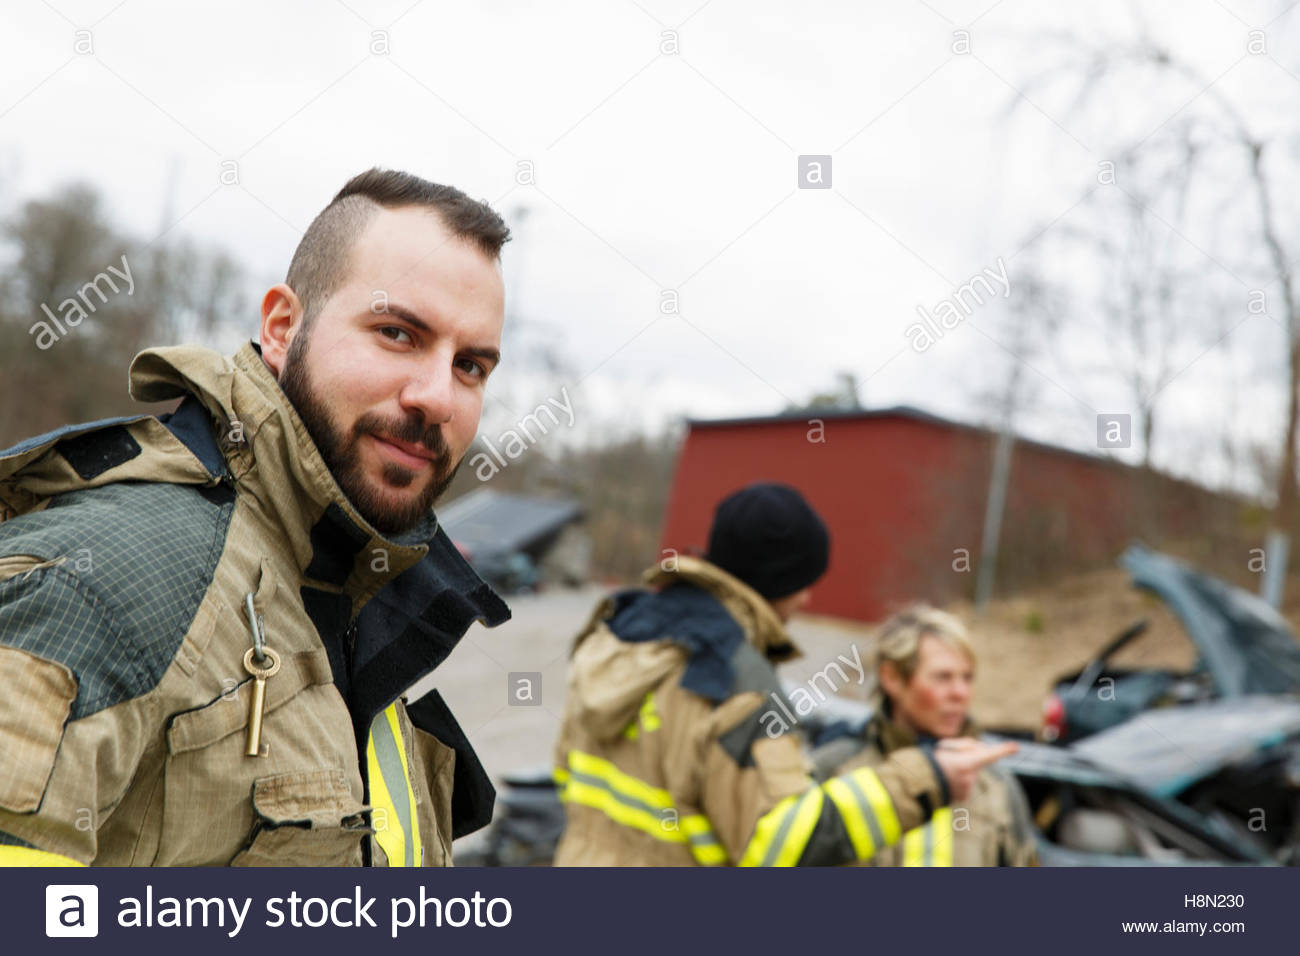 Firefighter looking at camera and others standing beside car - Stock Image